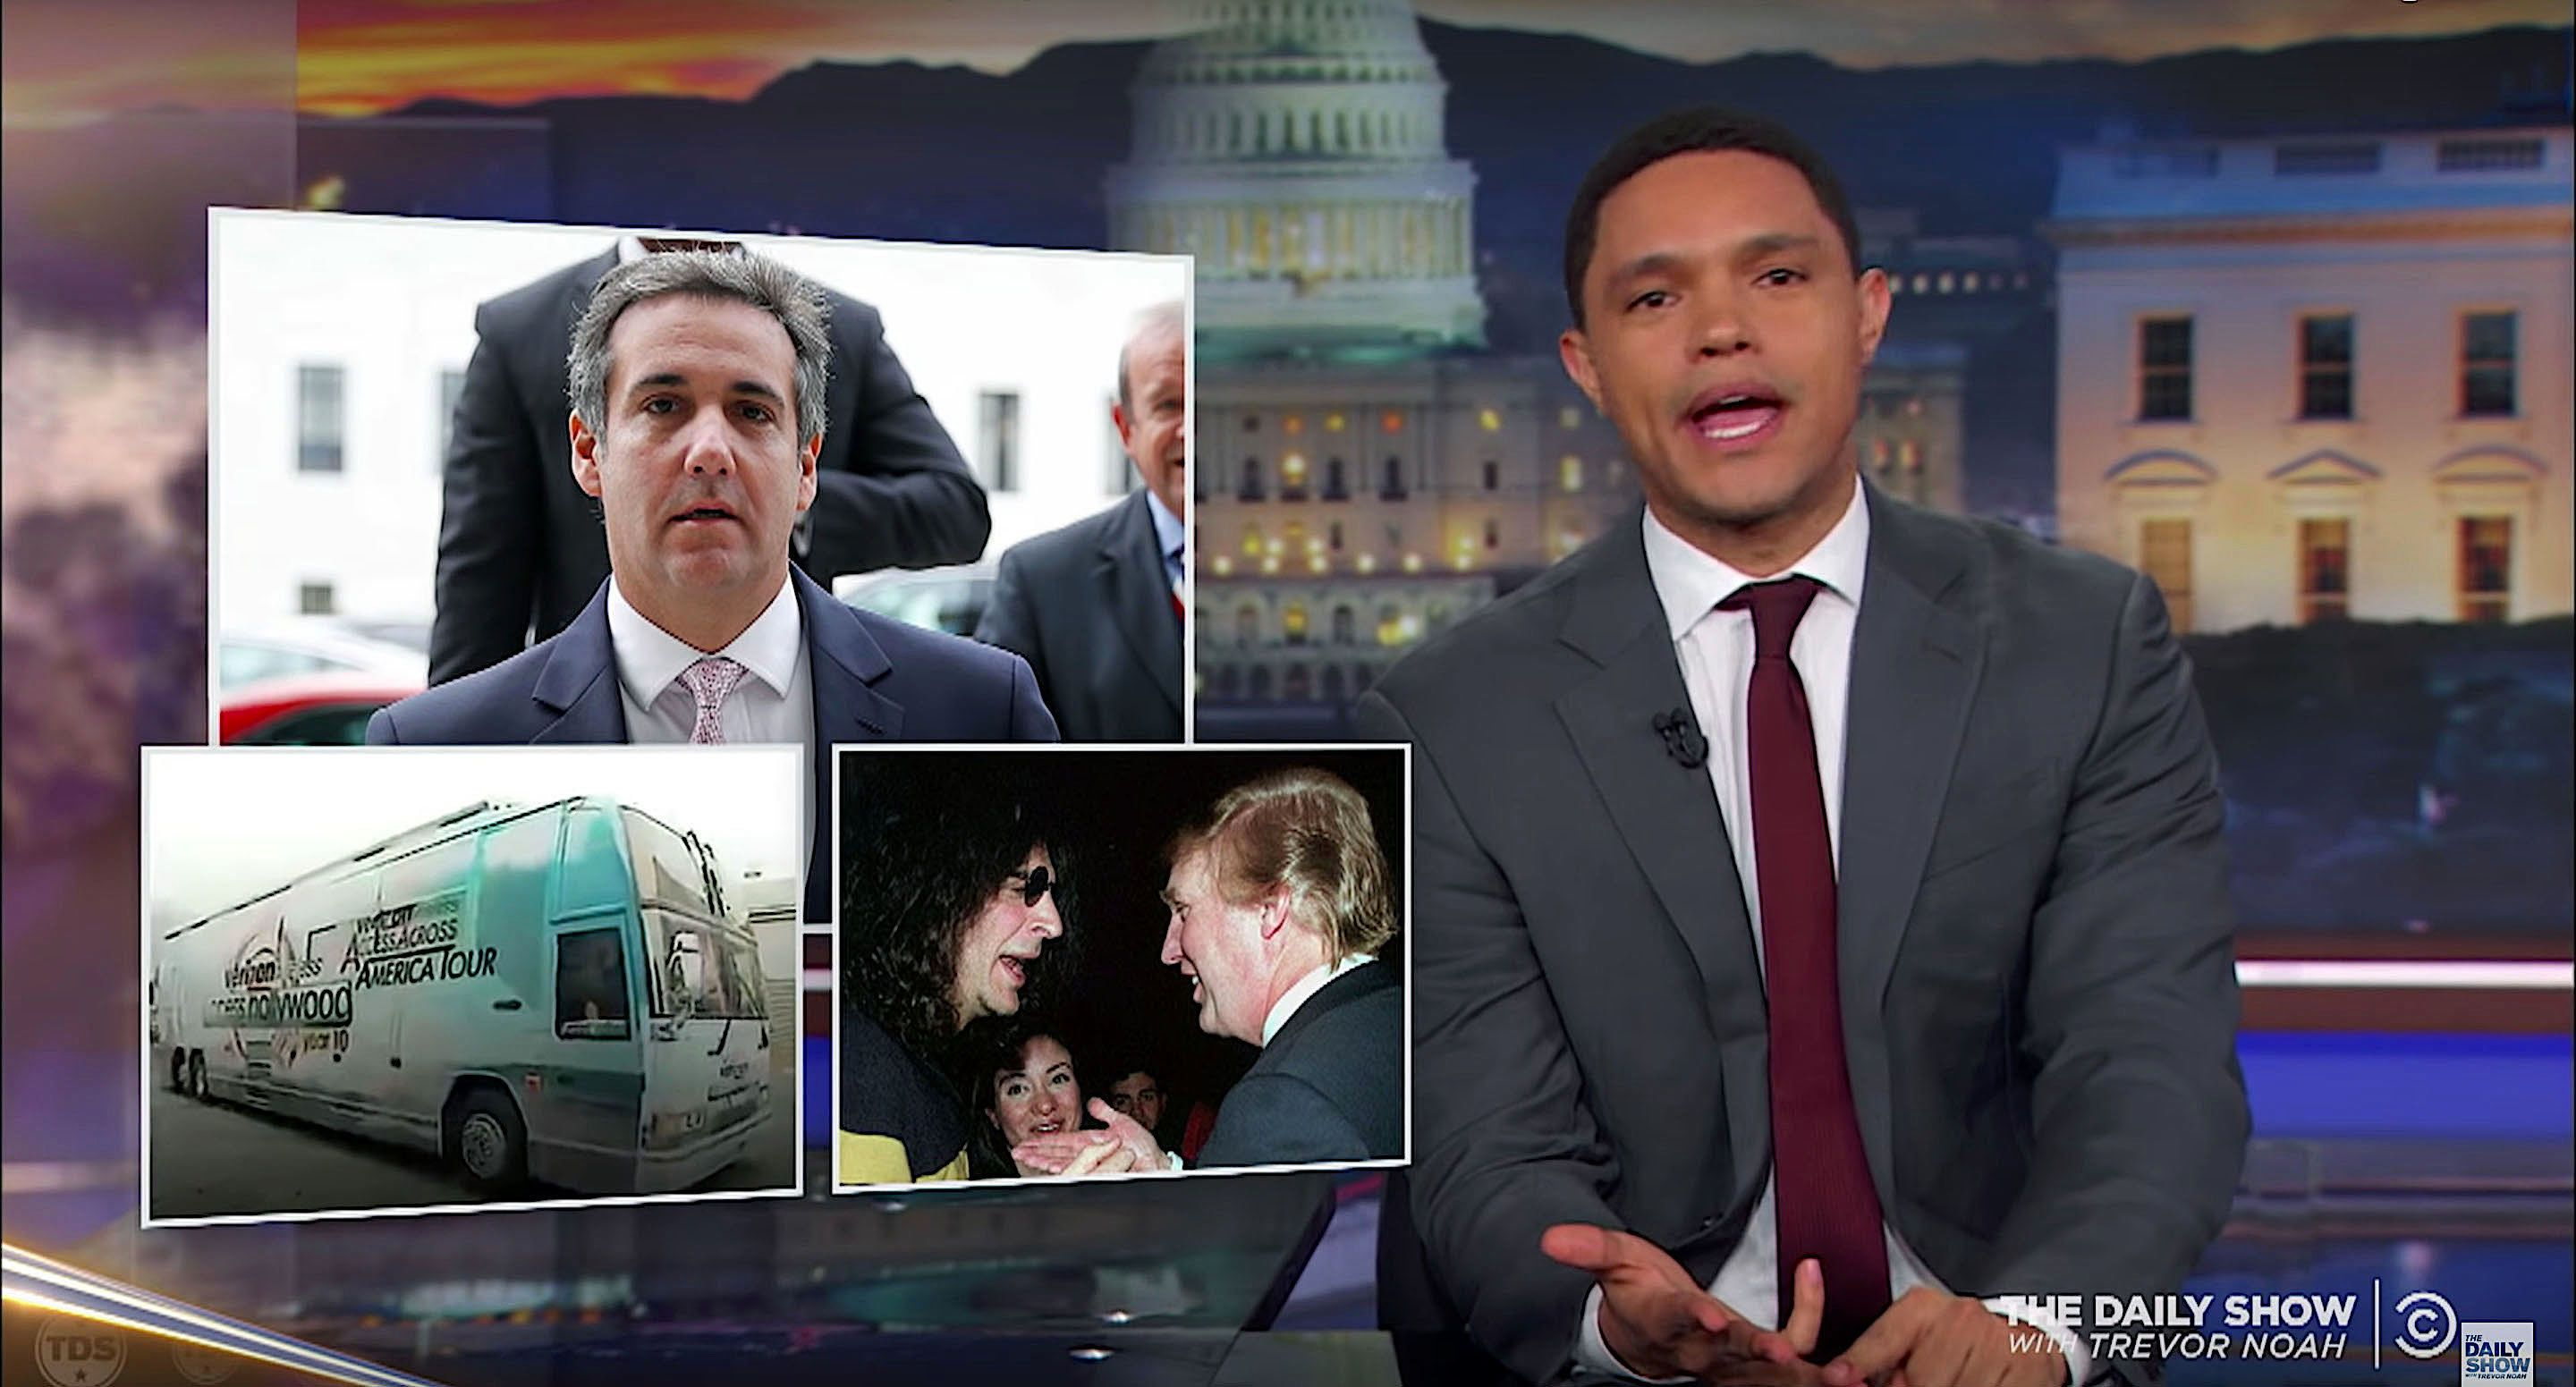 Trevor Noah of The Daily Show catches up on the weekend news